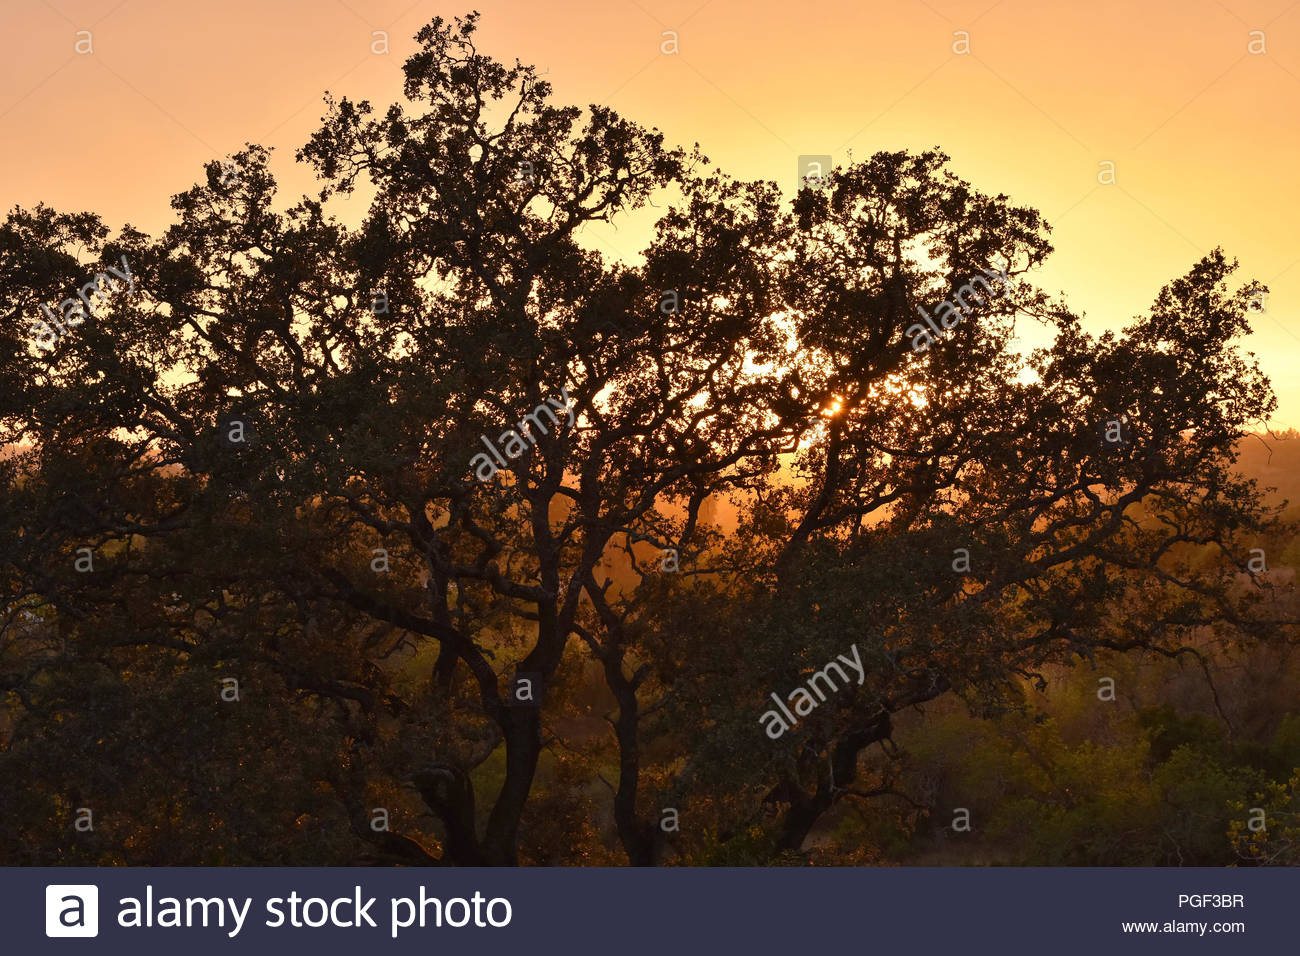 Cork oak tree silhouetted against setting sun in Algarve Southern Portugal Europe. - Stock Image